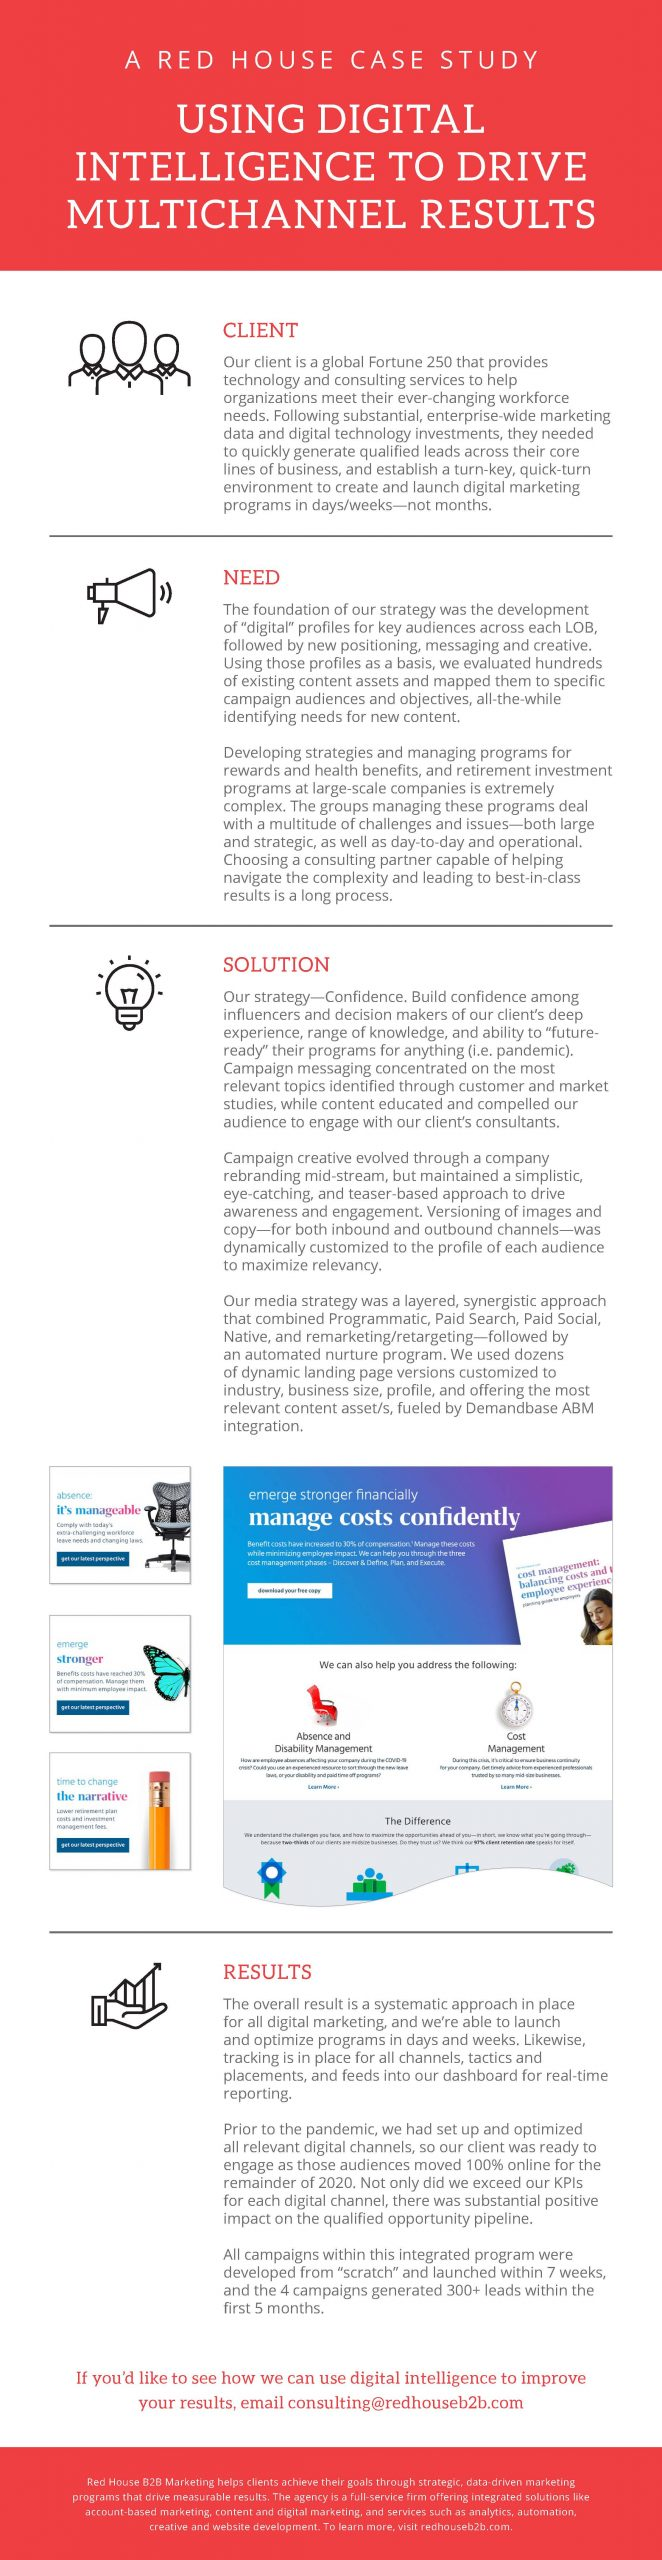 Case Study, Podcasts: Lead Generation That Keeps on Giving; case study infographic, case study infographic, Red House B2B Marketing